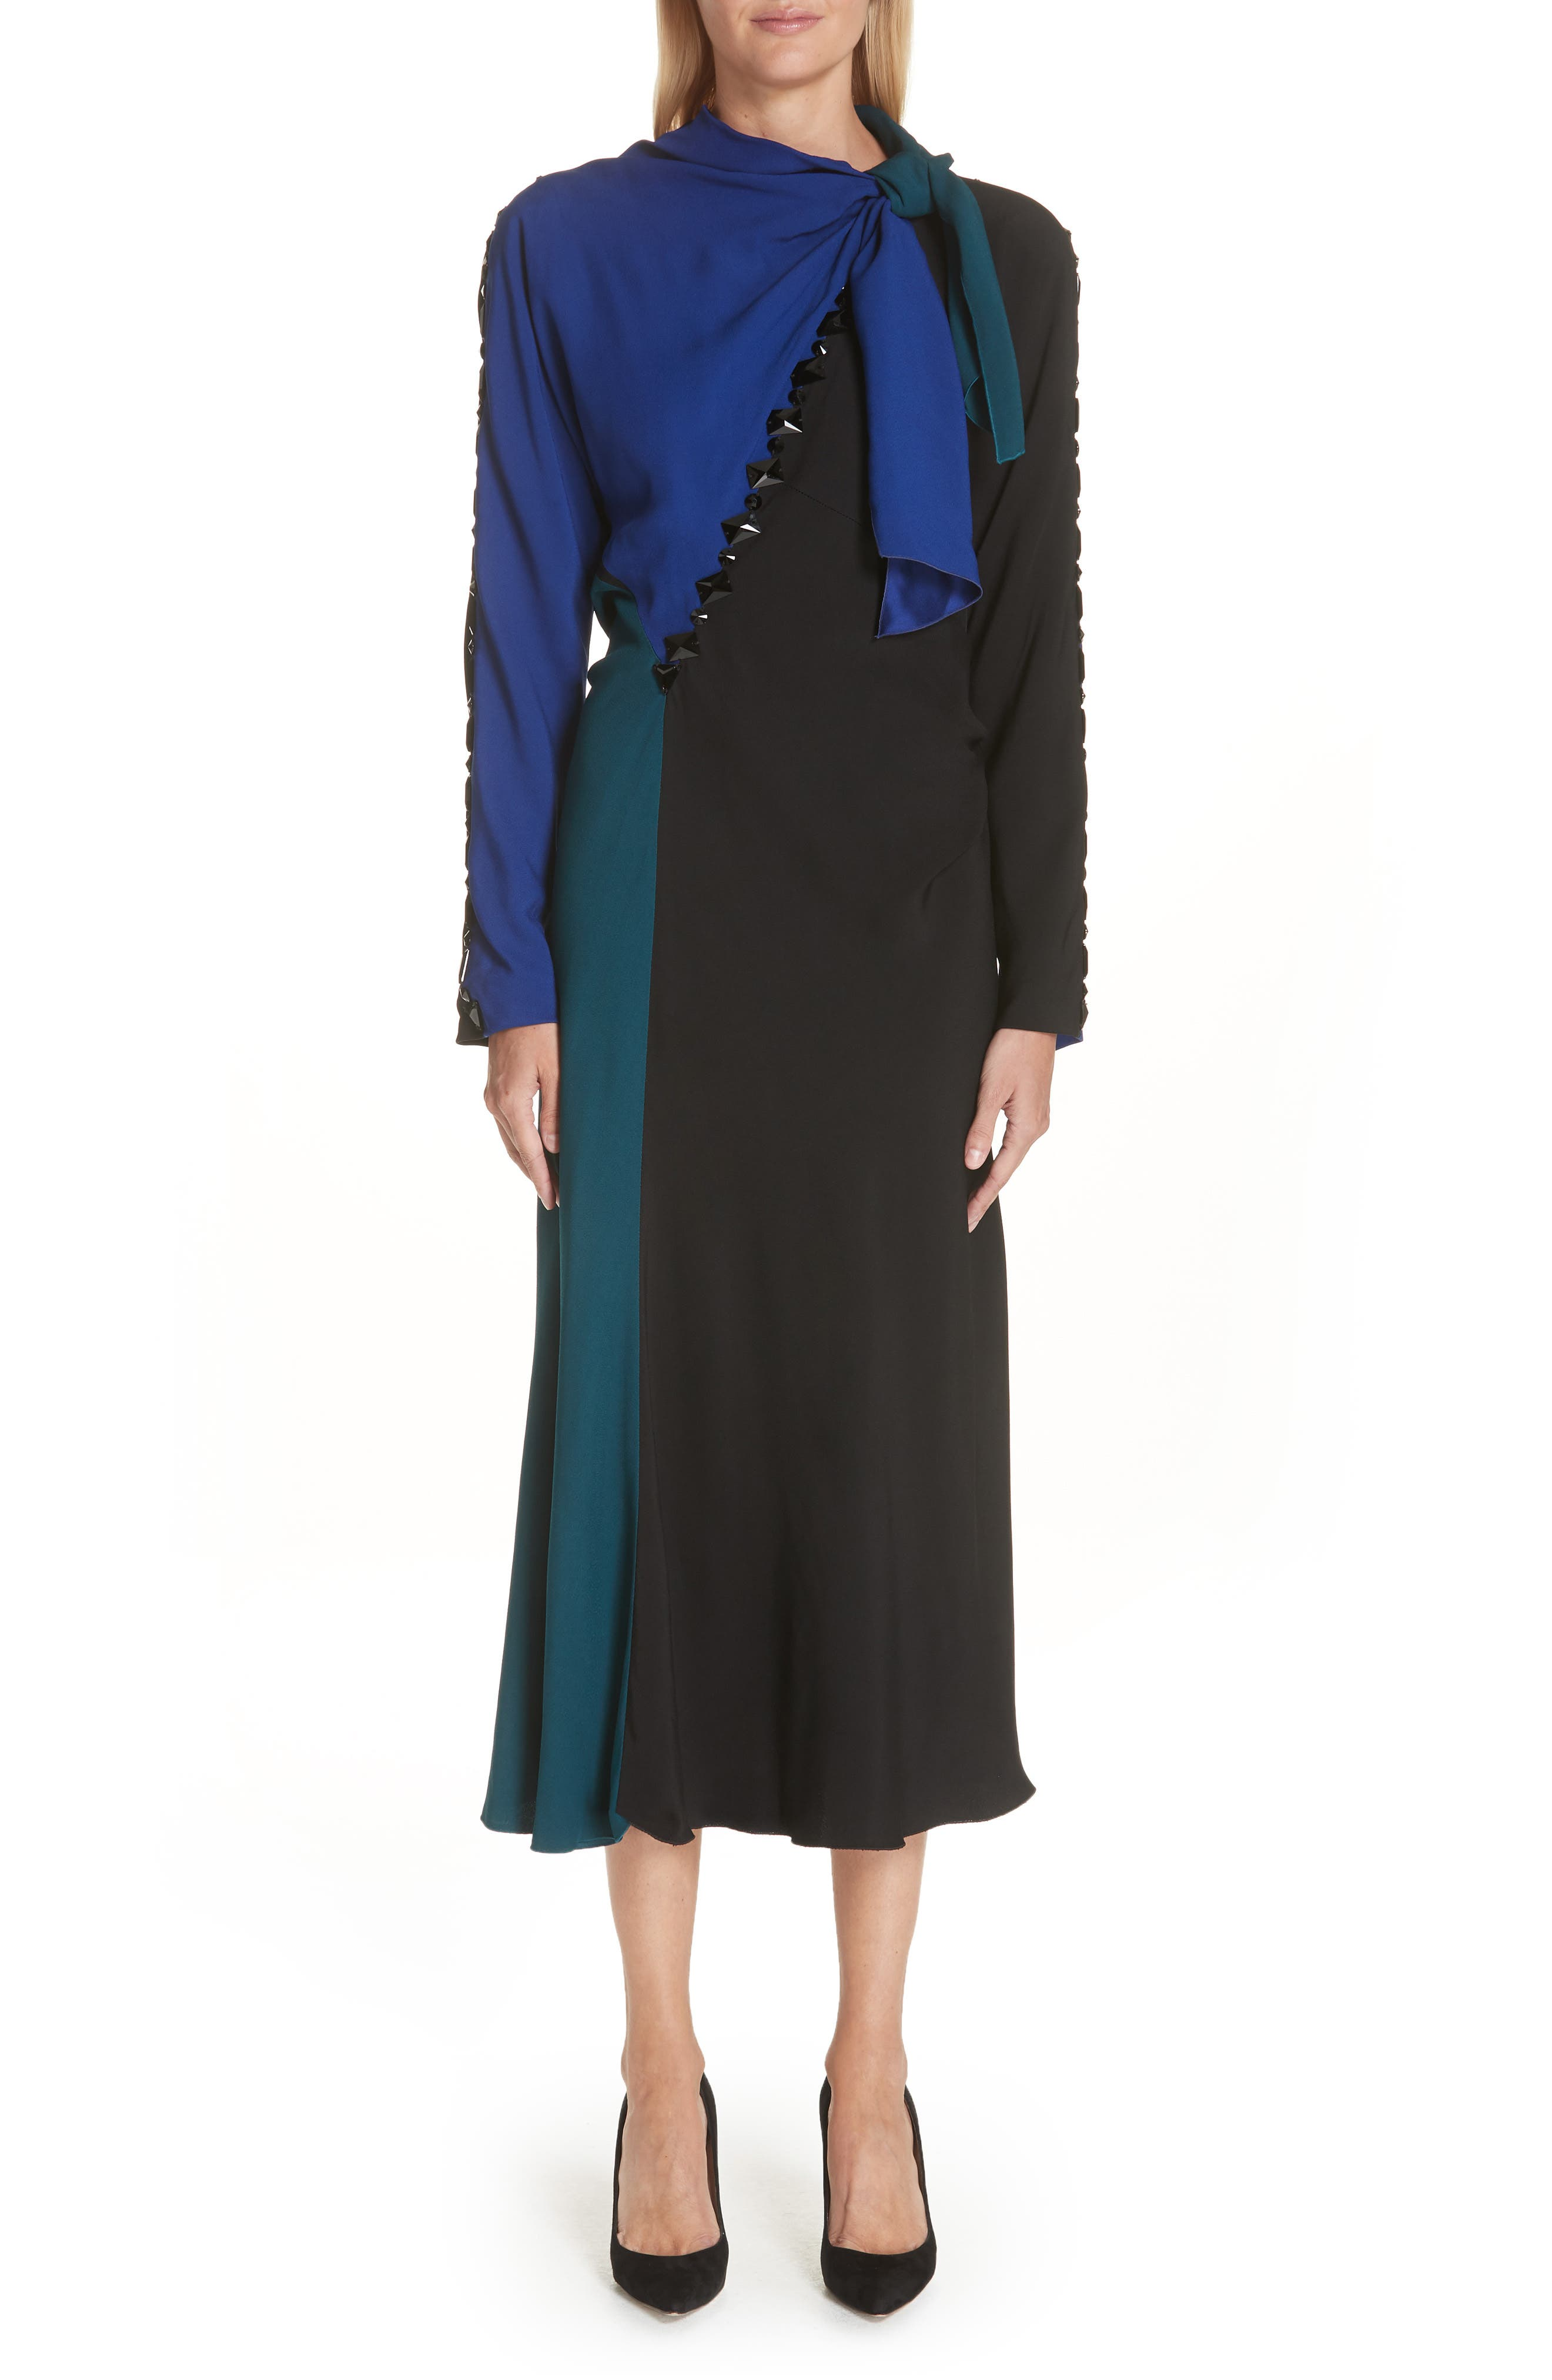 Marc Jacobs Tie Neck Colorblock Dress, Black